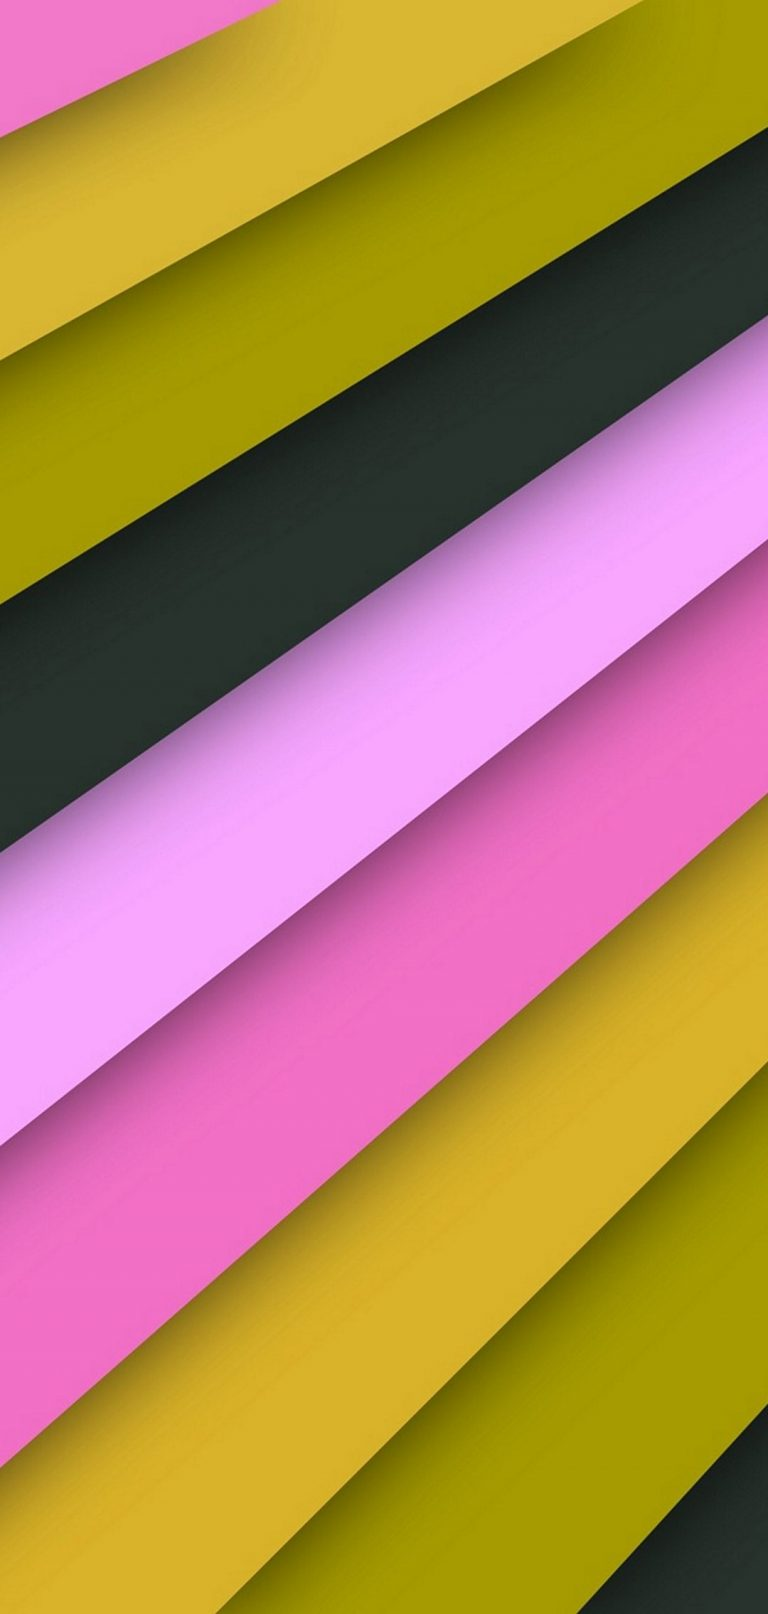 Texture Line Obliquely Pink Black Yellow 1080x2270 768x1614